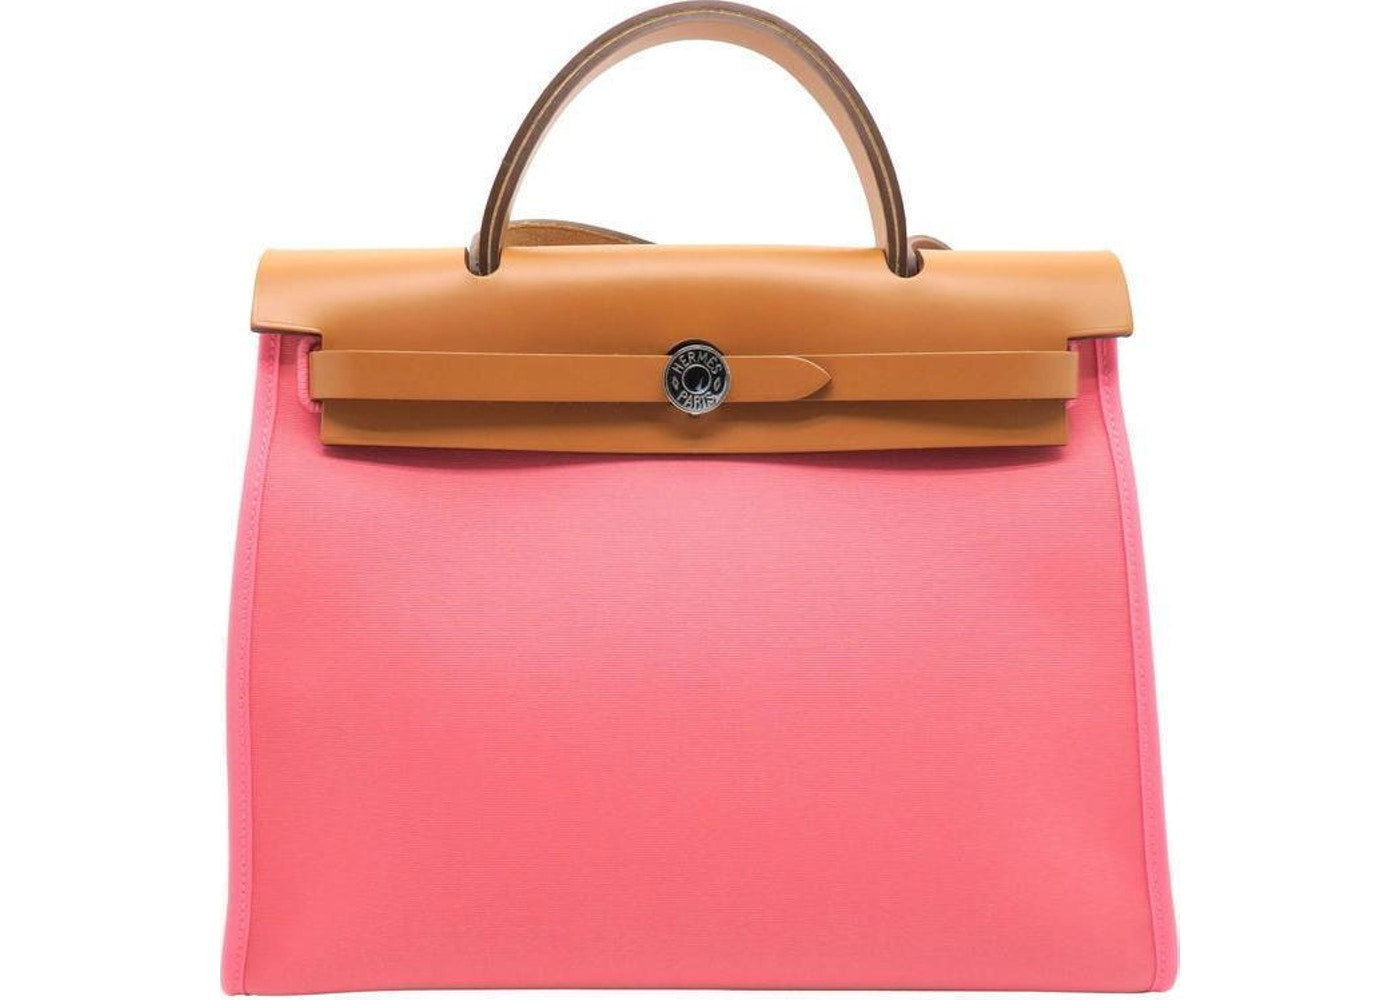 25886540d412 Hermes Herbag Top Handle PM Pink